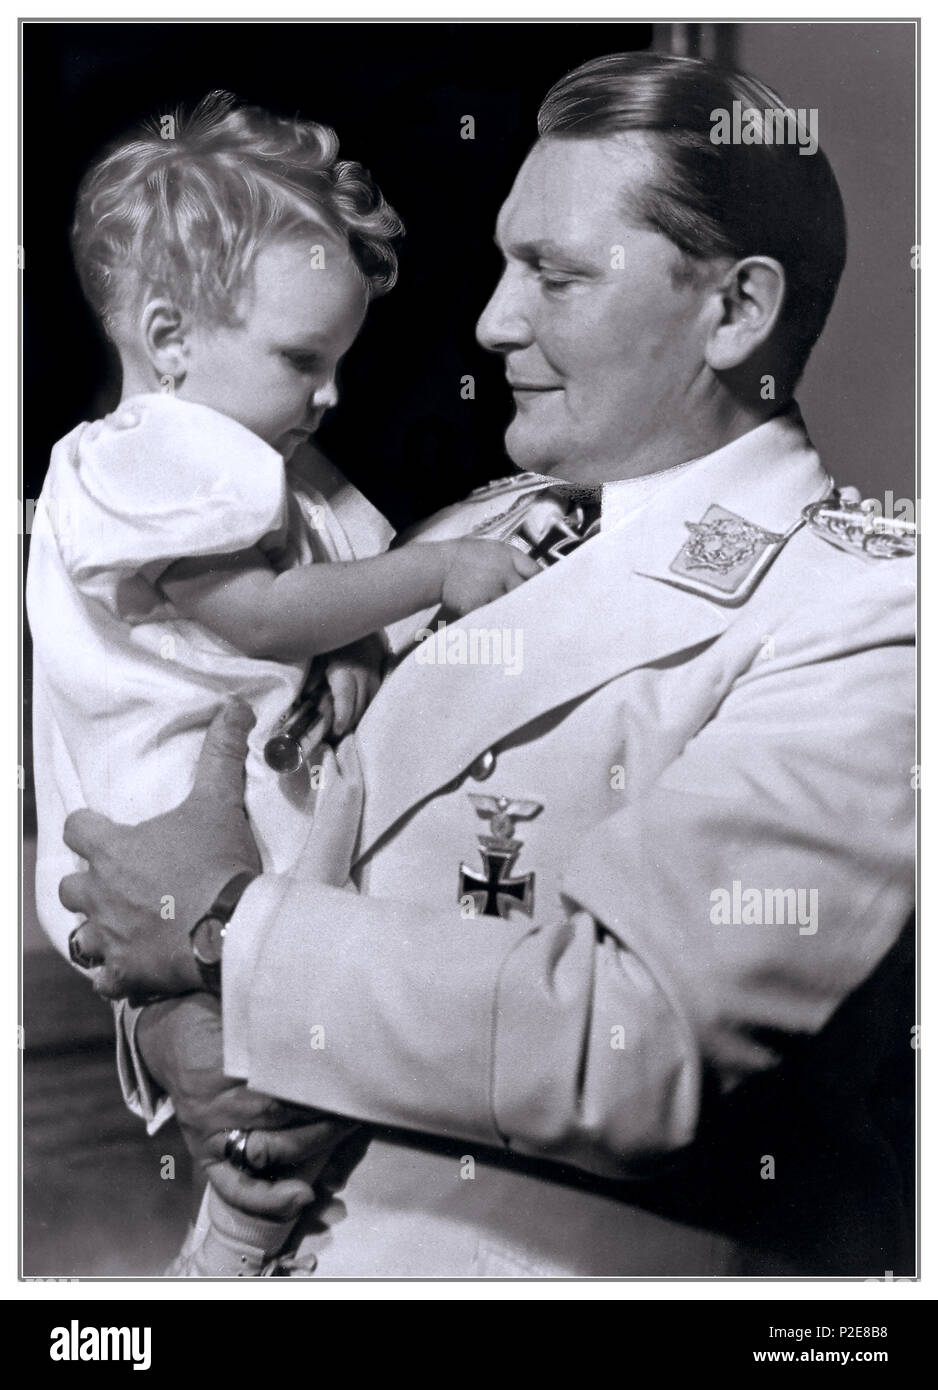 Vintage paternal portrait 1930's Edda Goering with her father Hermann Goering head of Nazi Luftwaffe 1938 Berlin Germany - Stock Image